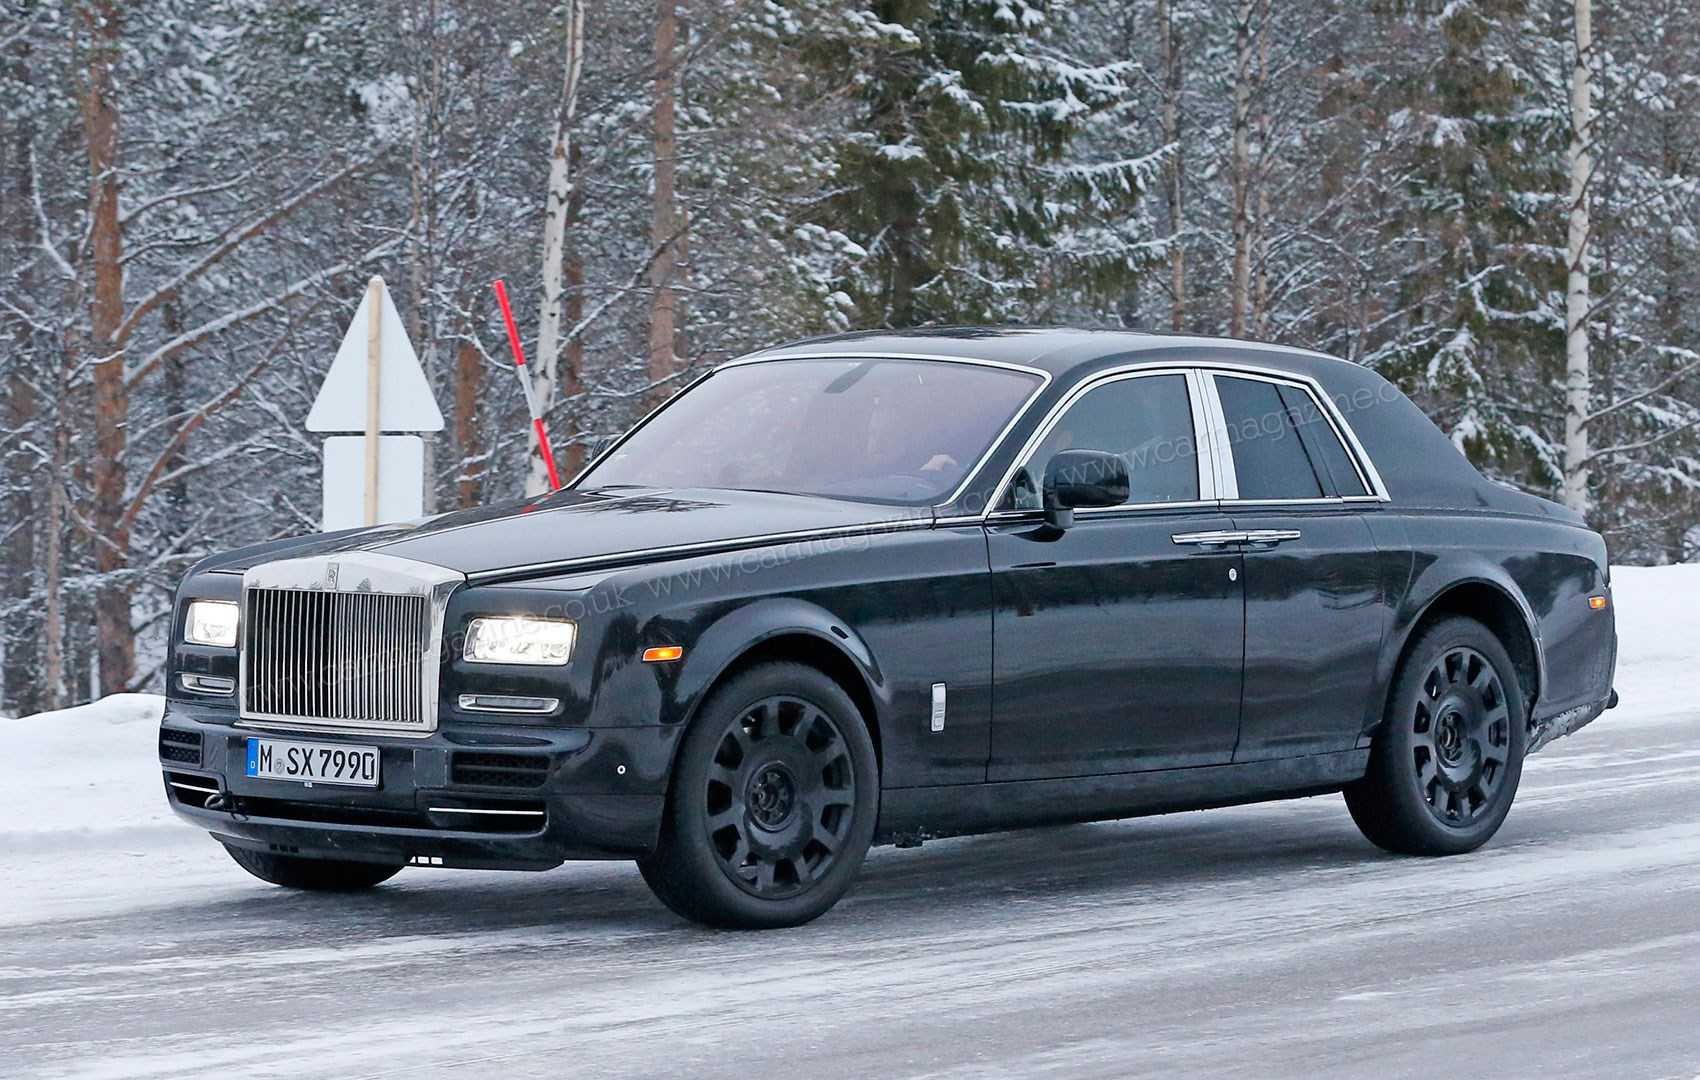 Cold Snap New Rolls Royce Suv Caught On Winter Test